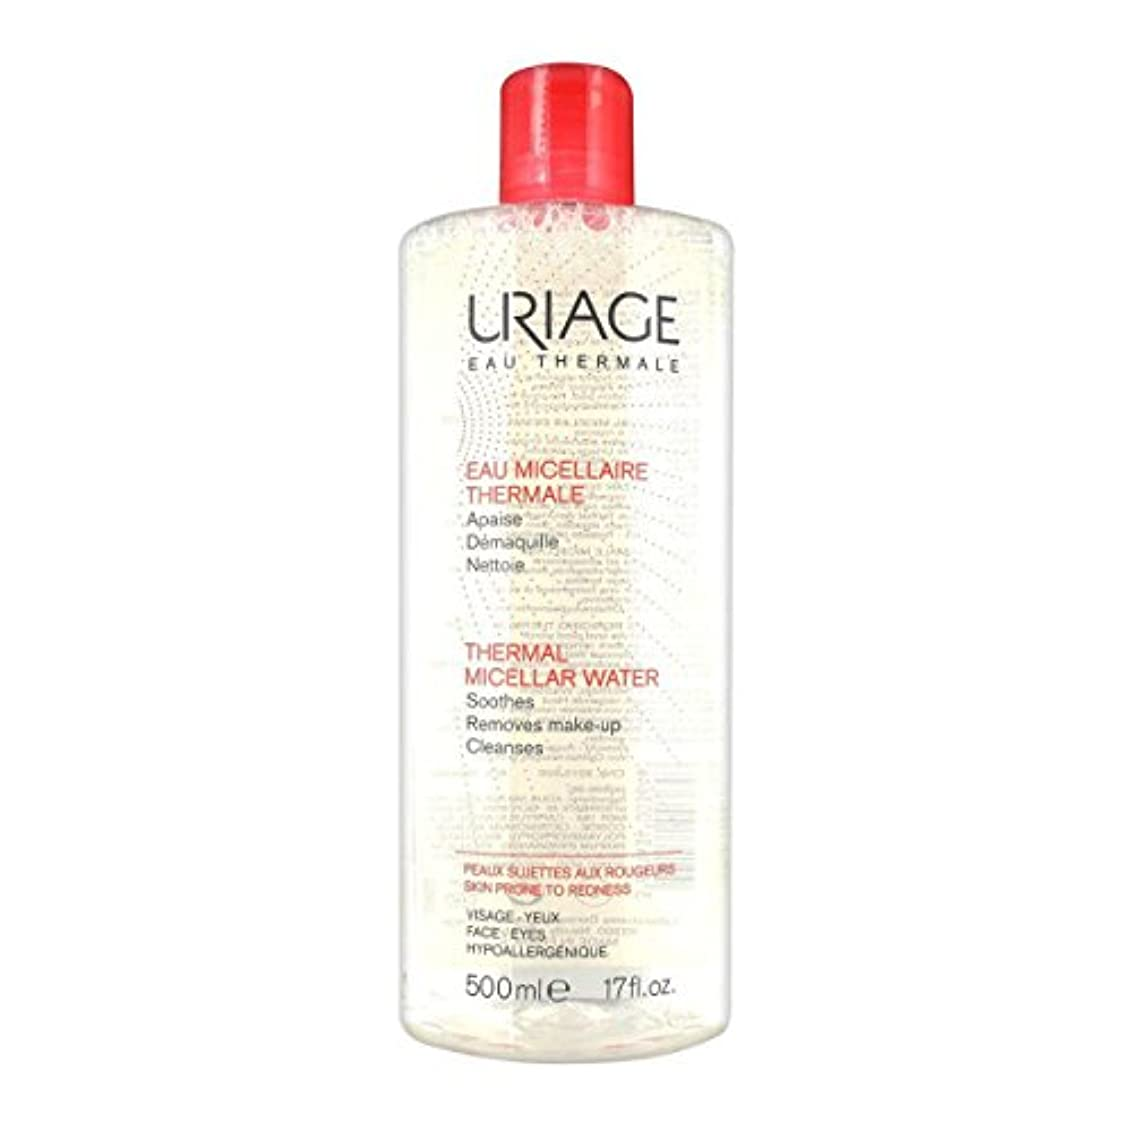 贅沢な会社知覚するUriage Thermal Micellar Water Skin Prone To Redness 500ml [並行輸入品]